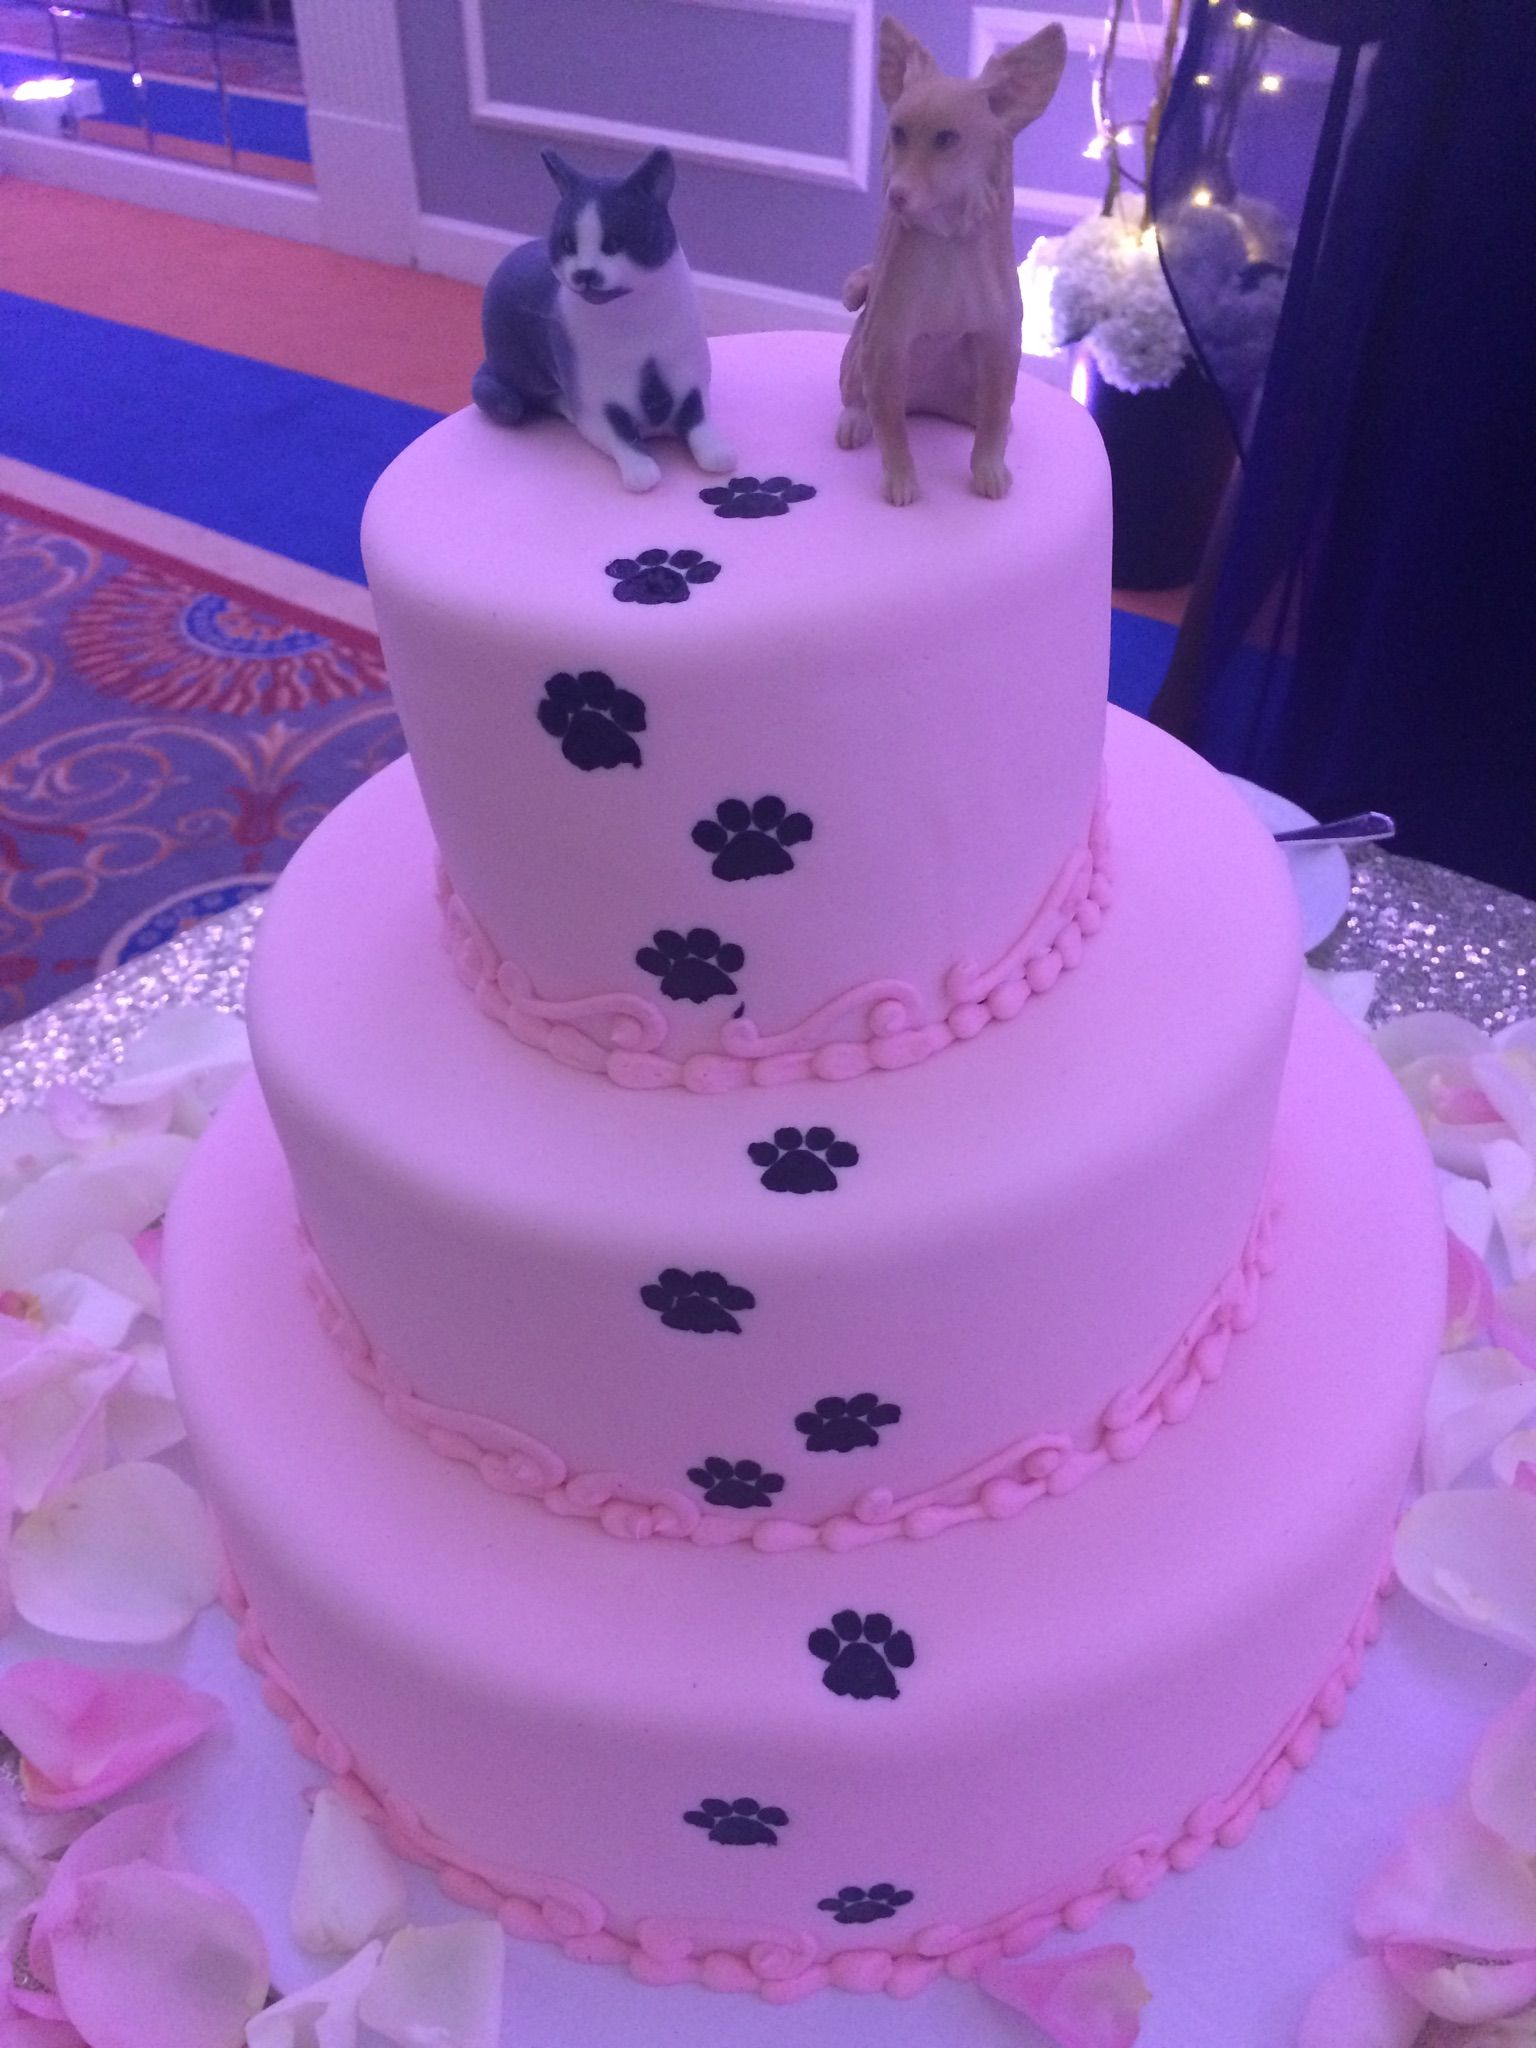 My cake complete with toppers custom made to look like our cat and